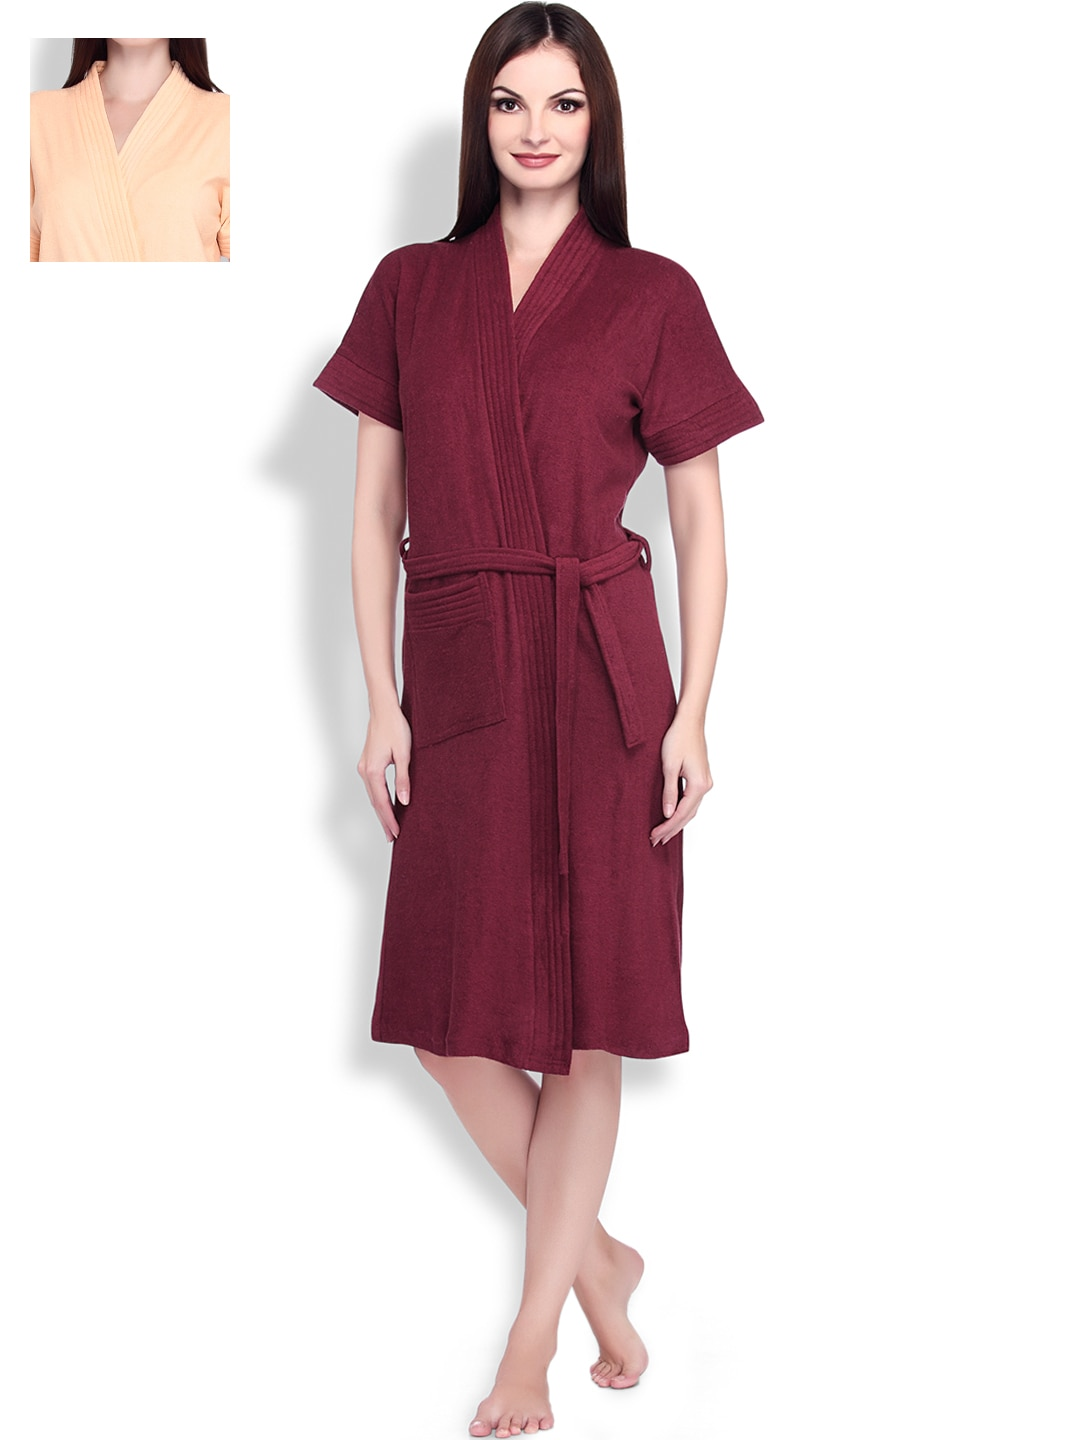 ef722465c Women Nightwear Robe - Buy Women Nightwear Robe online in India